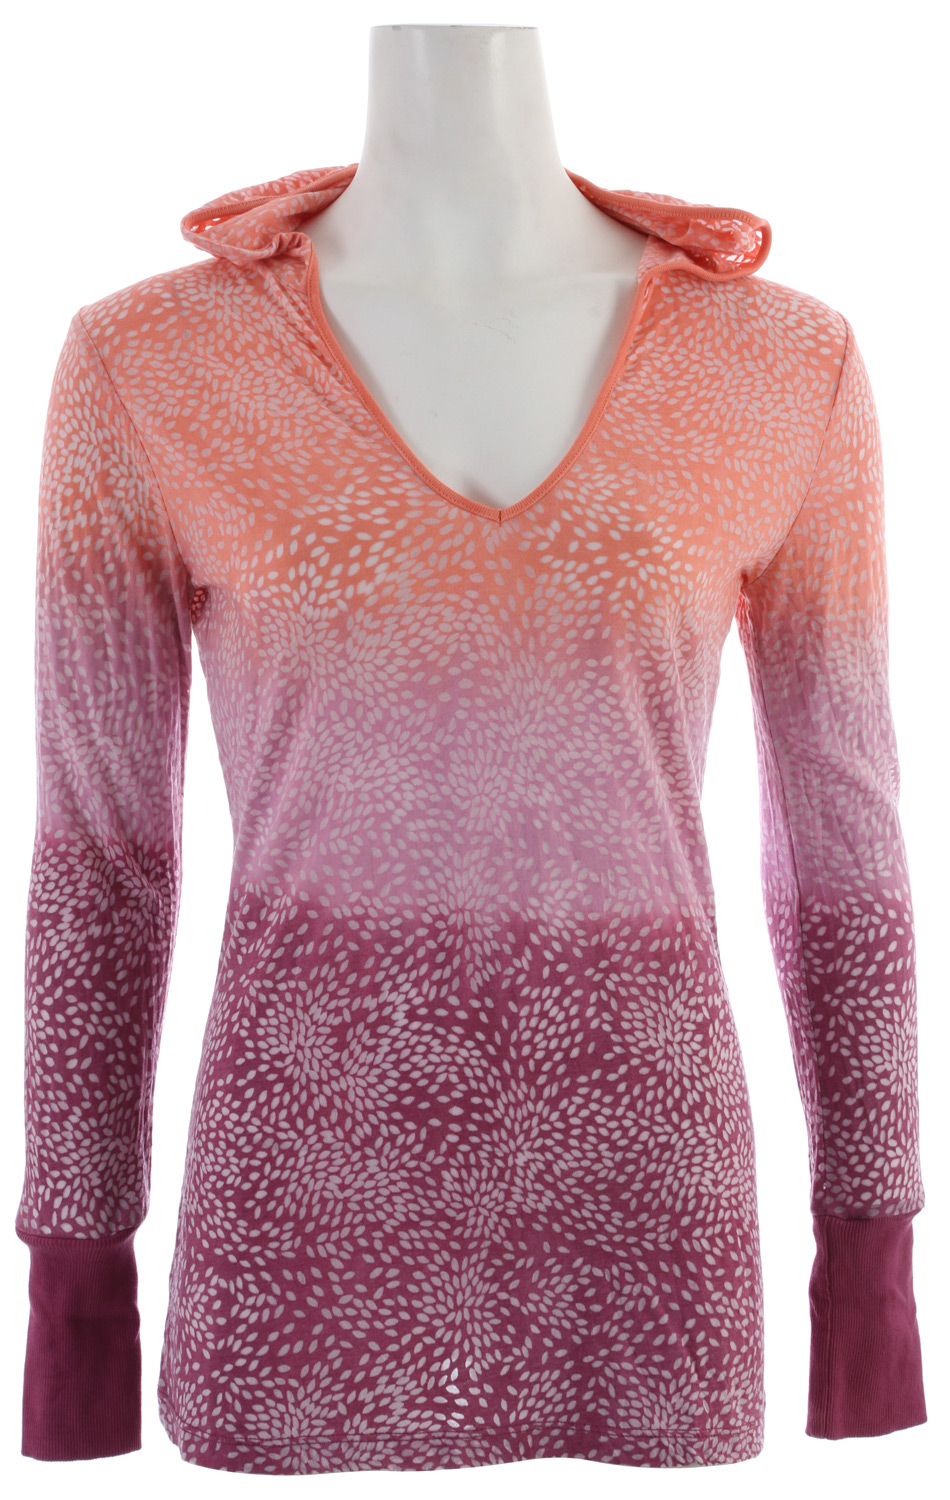 Key Features of the Prana Julz Hoodie Top: 50% organic cotton/50% recycled polyester Lightweight burnout fabric Everybody's favorite pullover silhouette Elegant pattern with double dip dye wash technique - $48.95